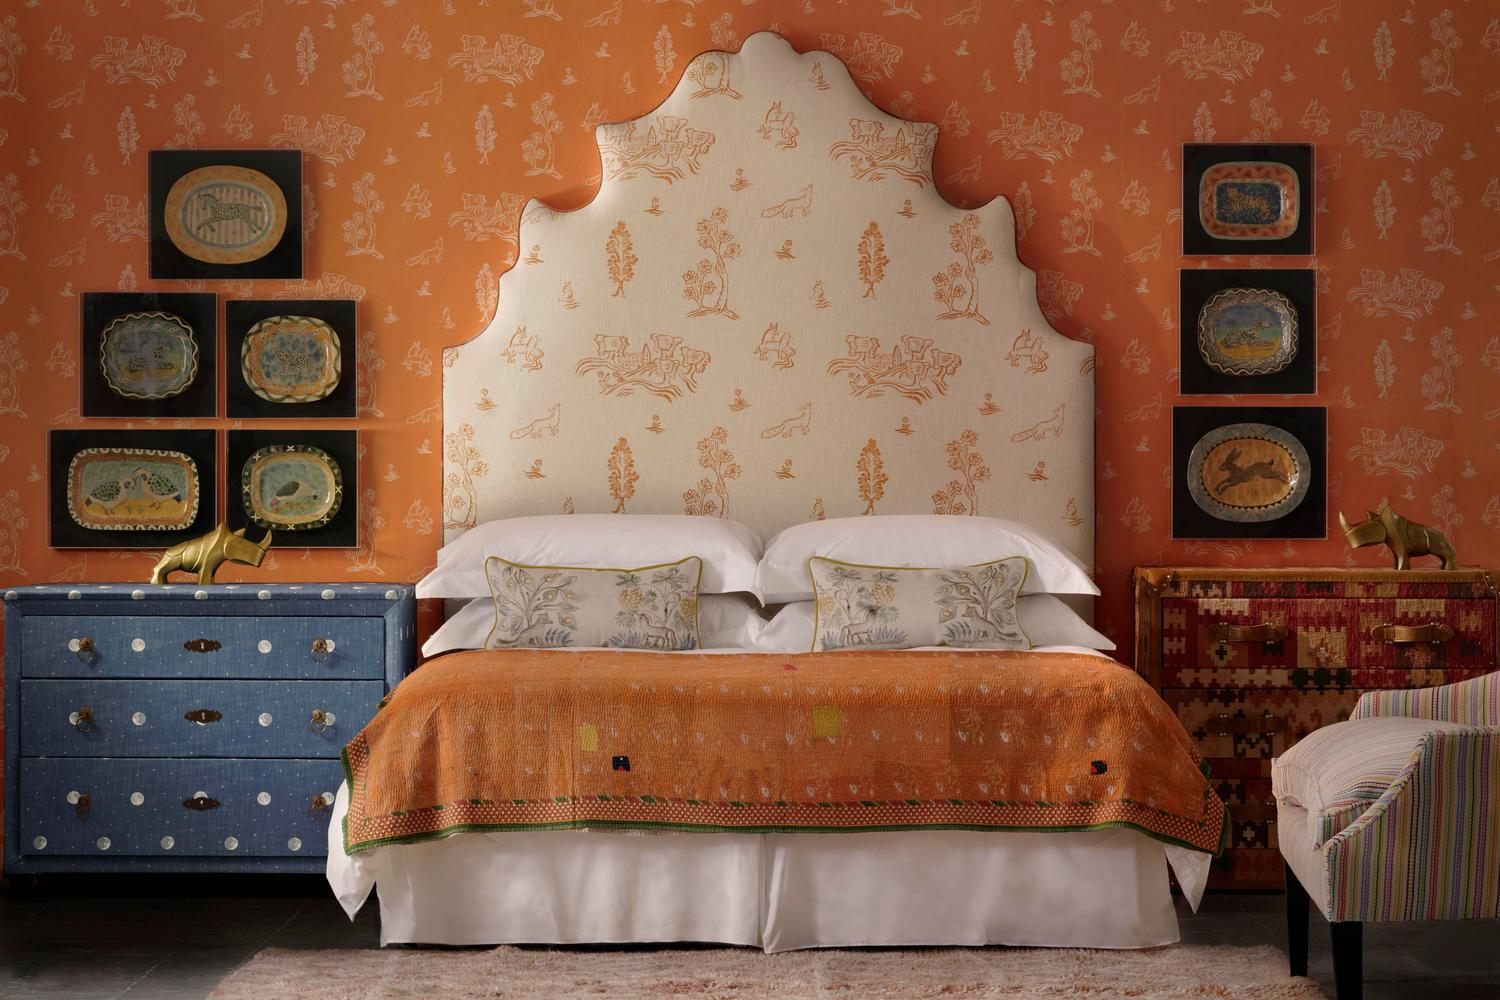 Lucifer Headboard upholstered in Friendly Folk Melon Orange Fabric against Wychwood Melon Orange Wallpaper with chest of drawers in Over the Moon Denim Fabric